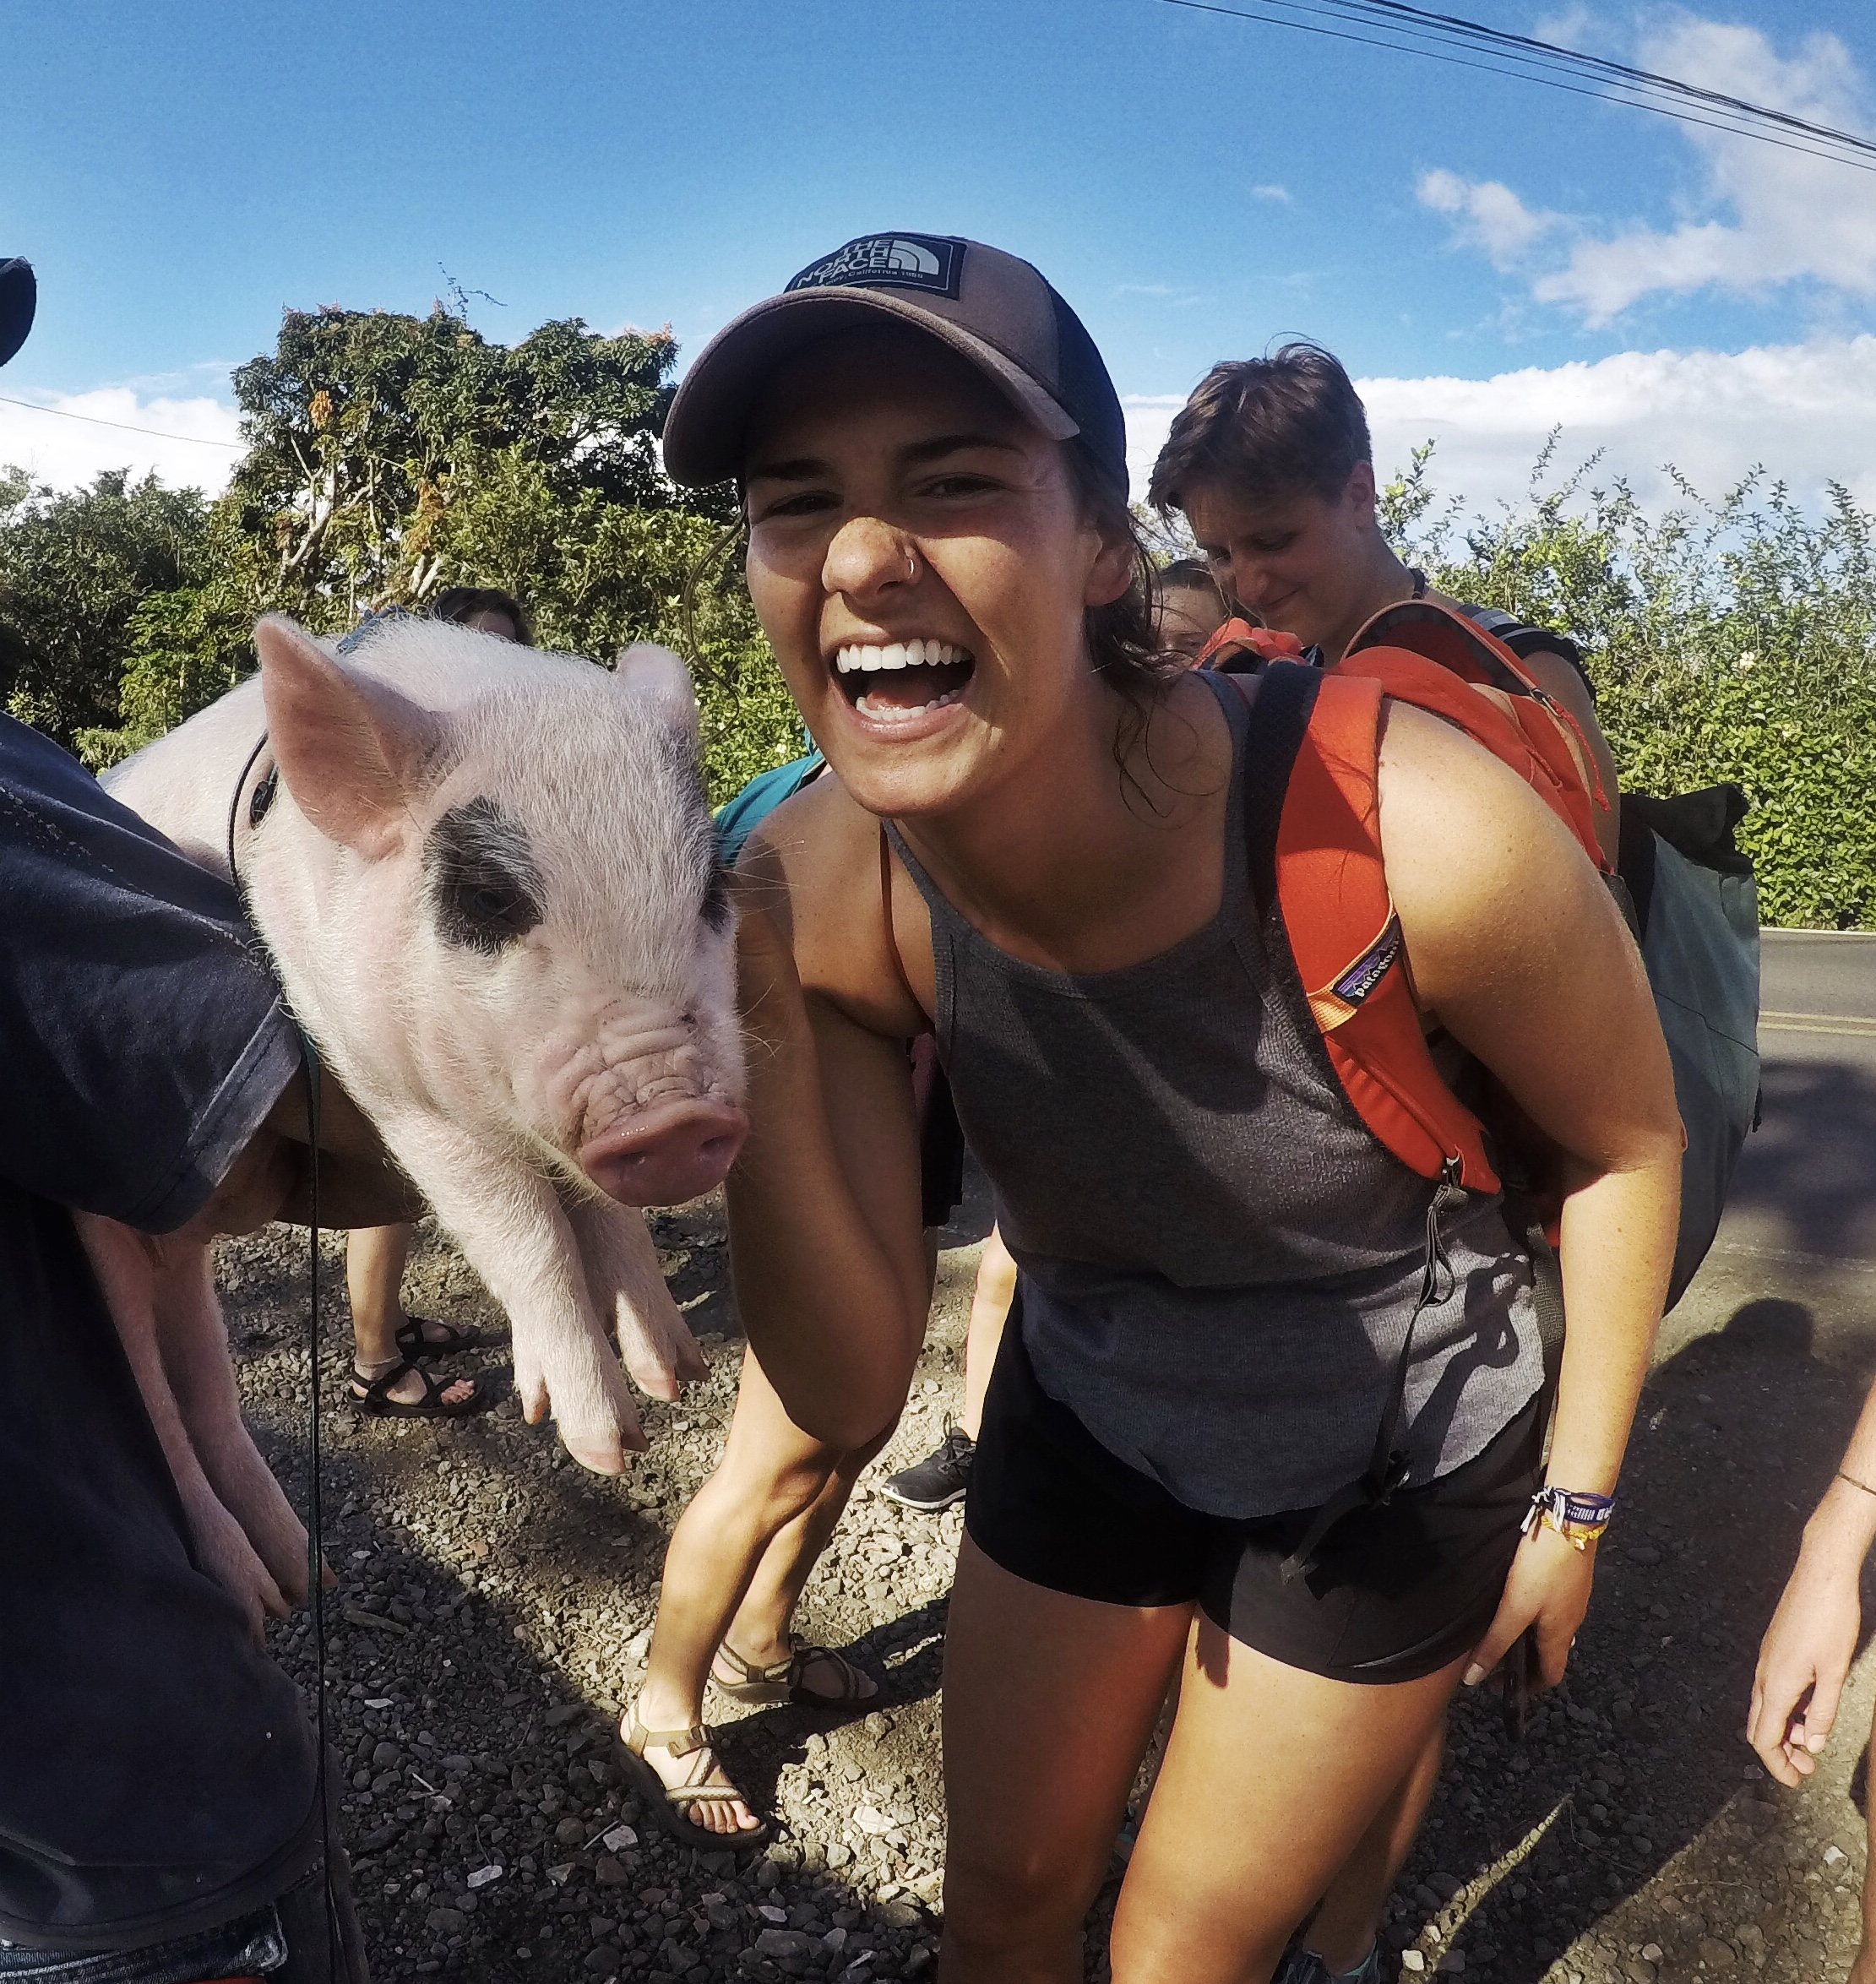 Carli meeting a friendly pig in Costa Rica!